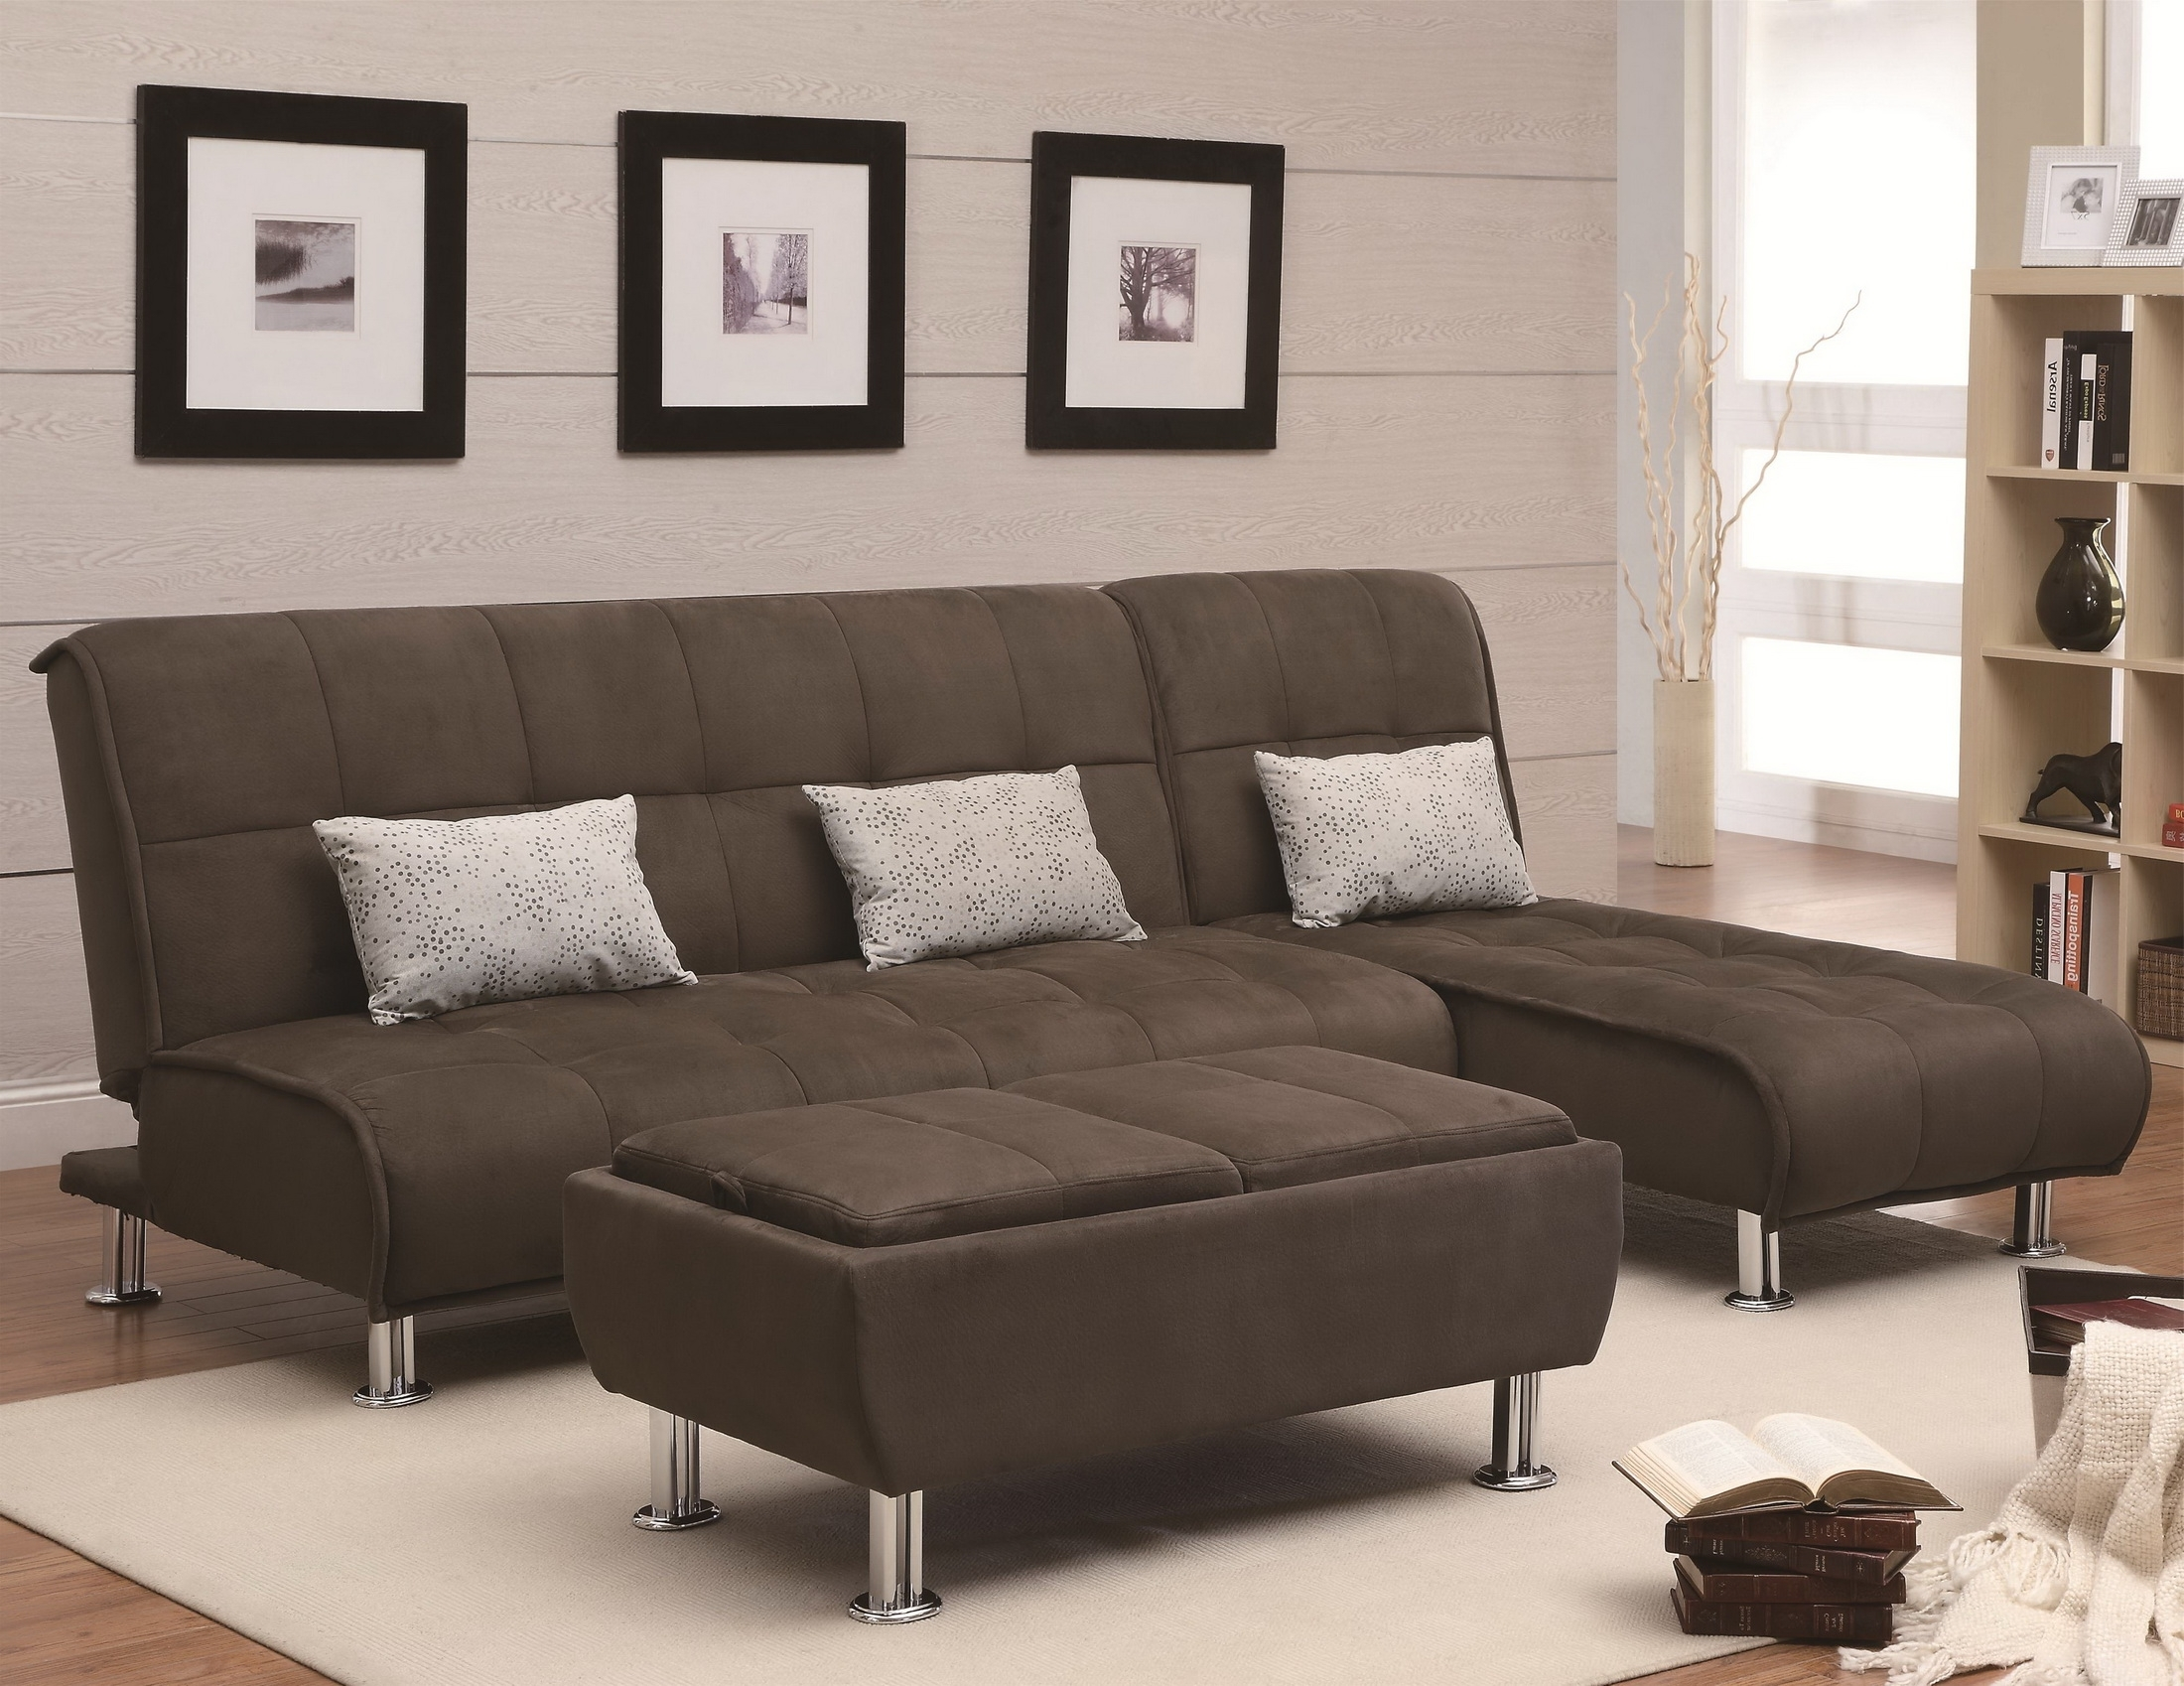 Current Brown Velvet Sectional Sofa With High Back And Grey Cushions Plus Intended For Sectional Sofas With High Backs (View 14 of 15)